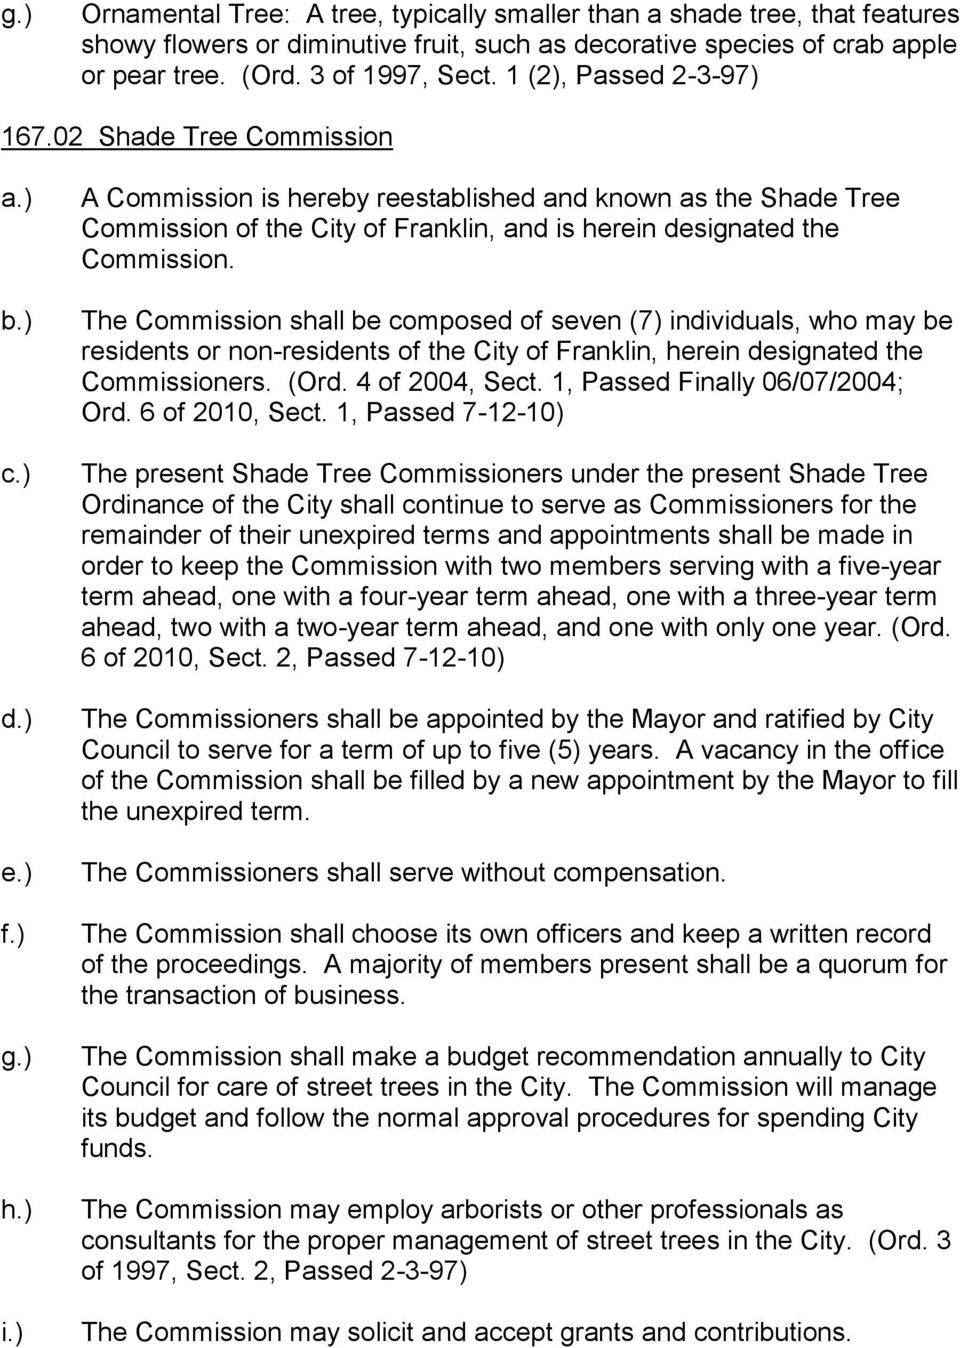 ) A Commission is hereby reestablished and known as the Shade Tree Commission of the City of Franklin, and is herein designated the Commission.